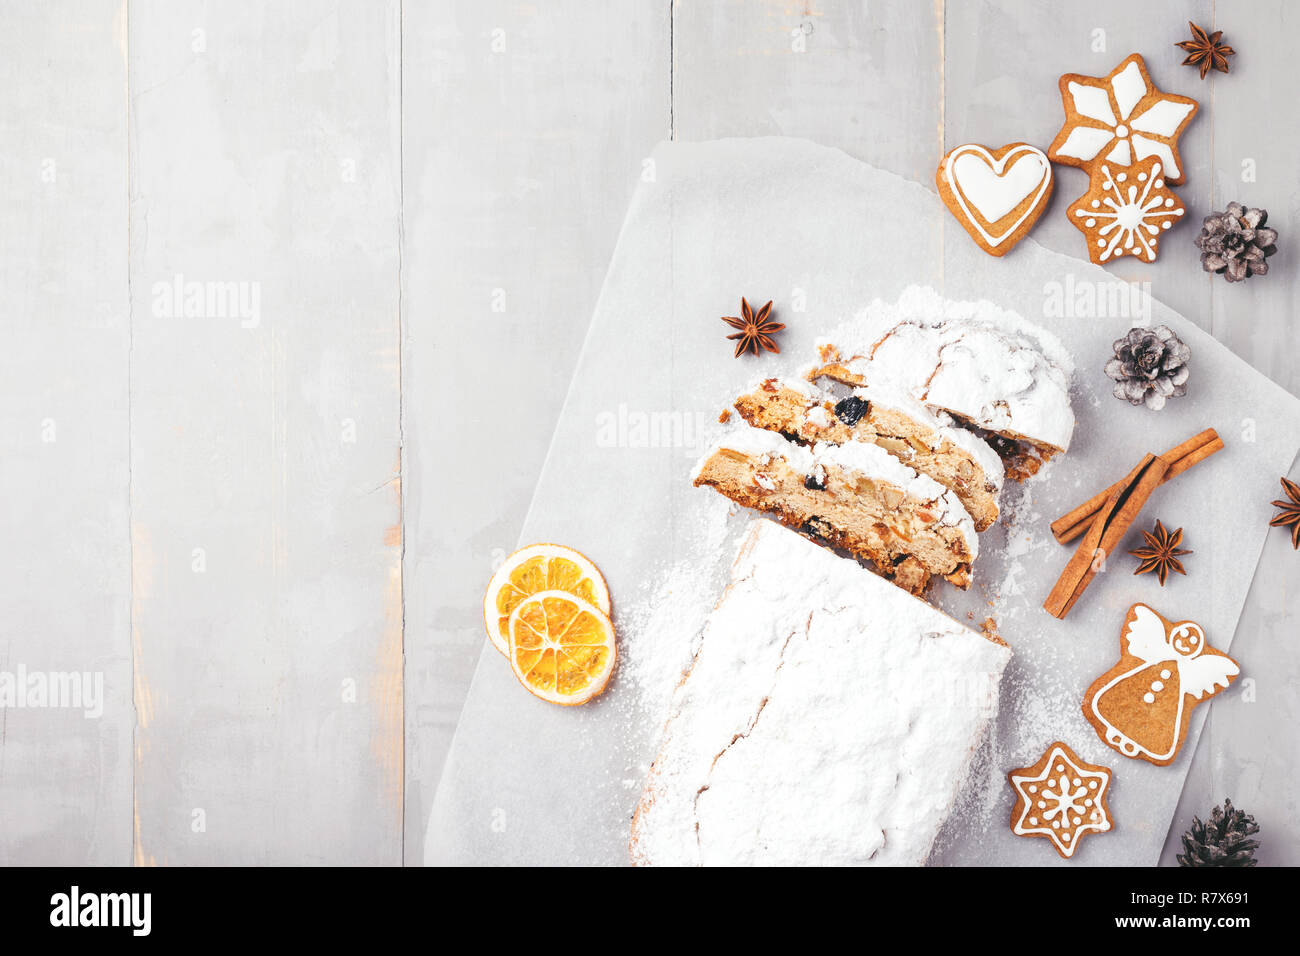 Traditional Christmas stollen with gingerbread, cinnamon, anise stars and orange chips on grey wooden table. Top view with copy space. - Stock Image